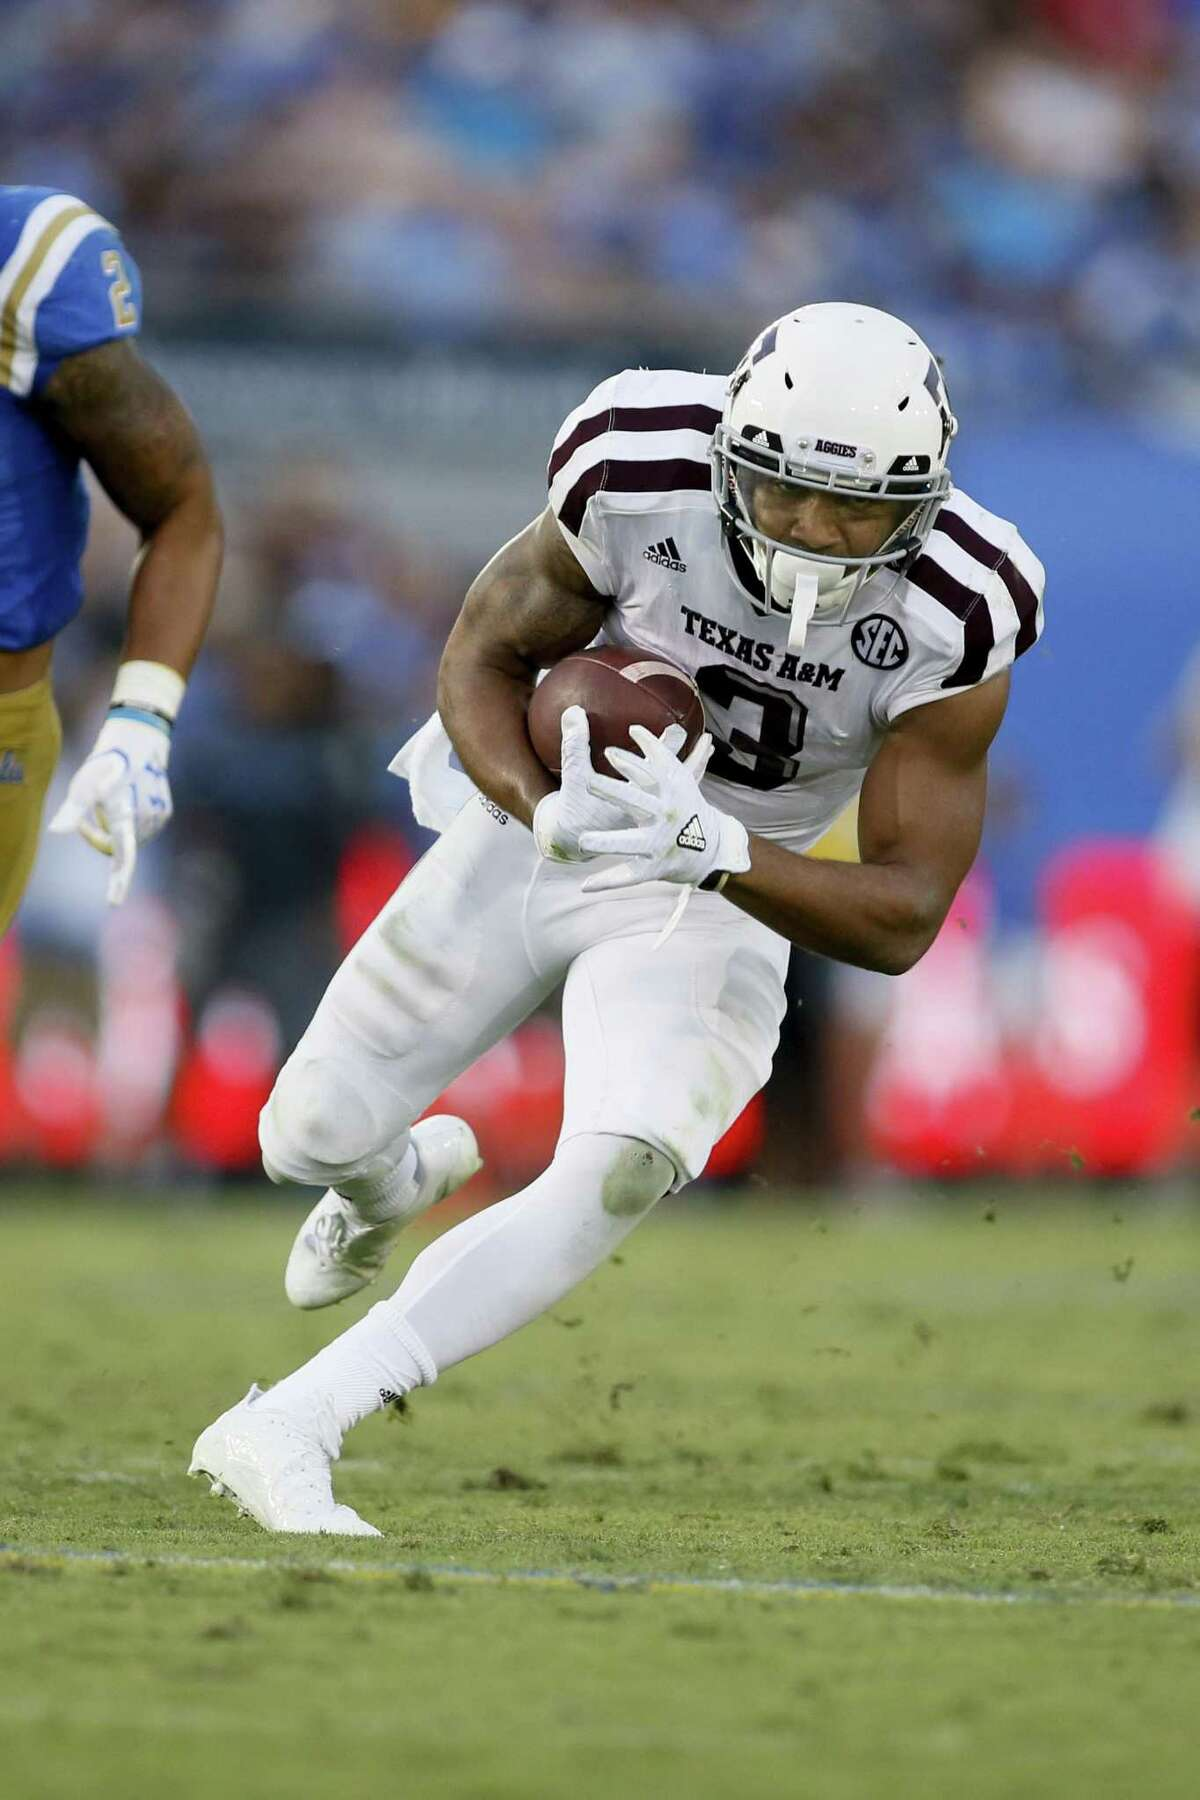 Texas A&M wide receiver Christian Kirk runs after a catch against UCLA on Sept. 3, 2017, in Pasadena, Calif.